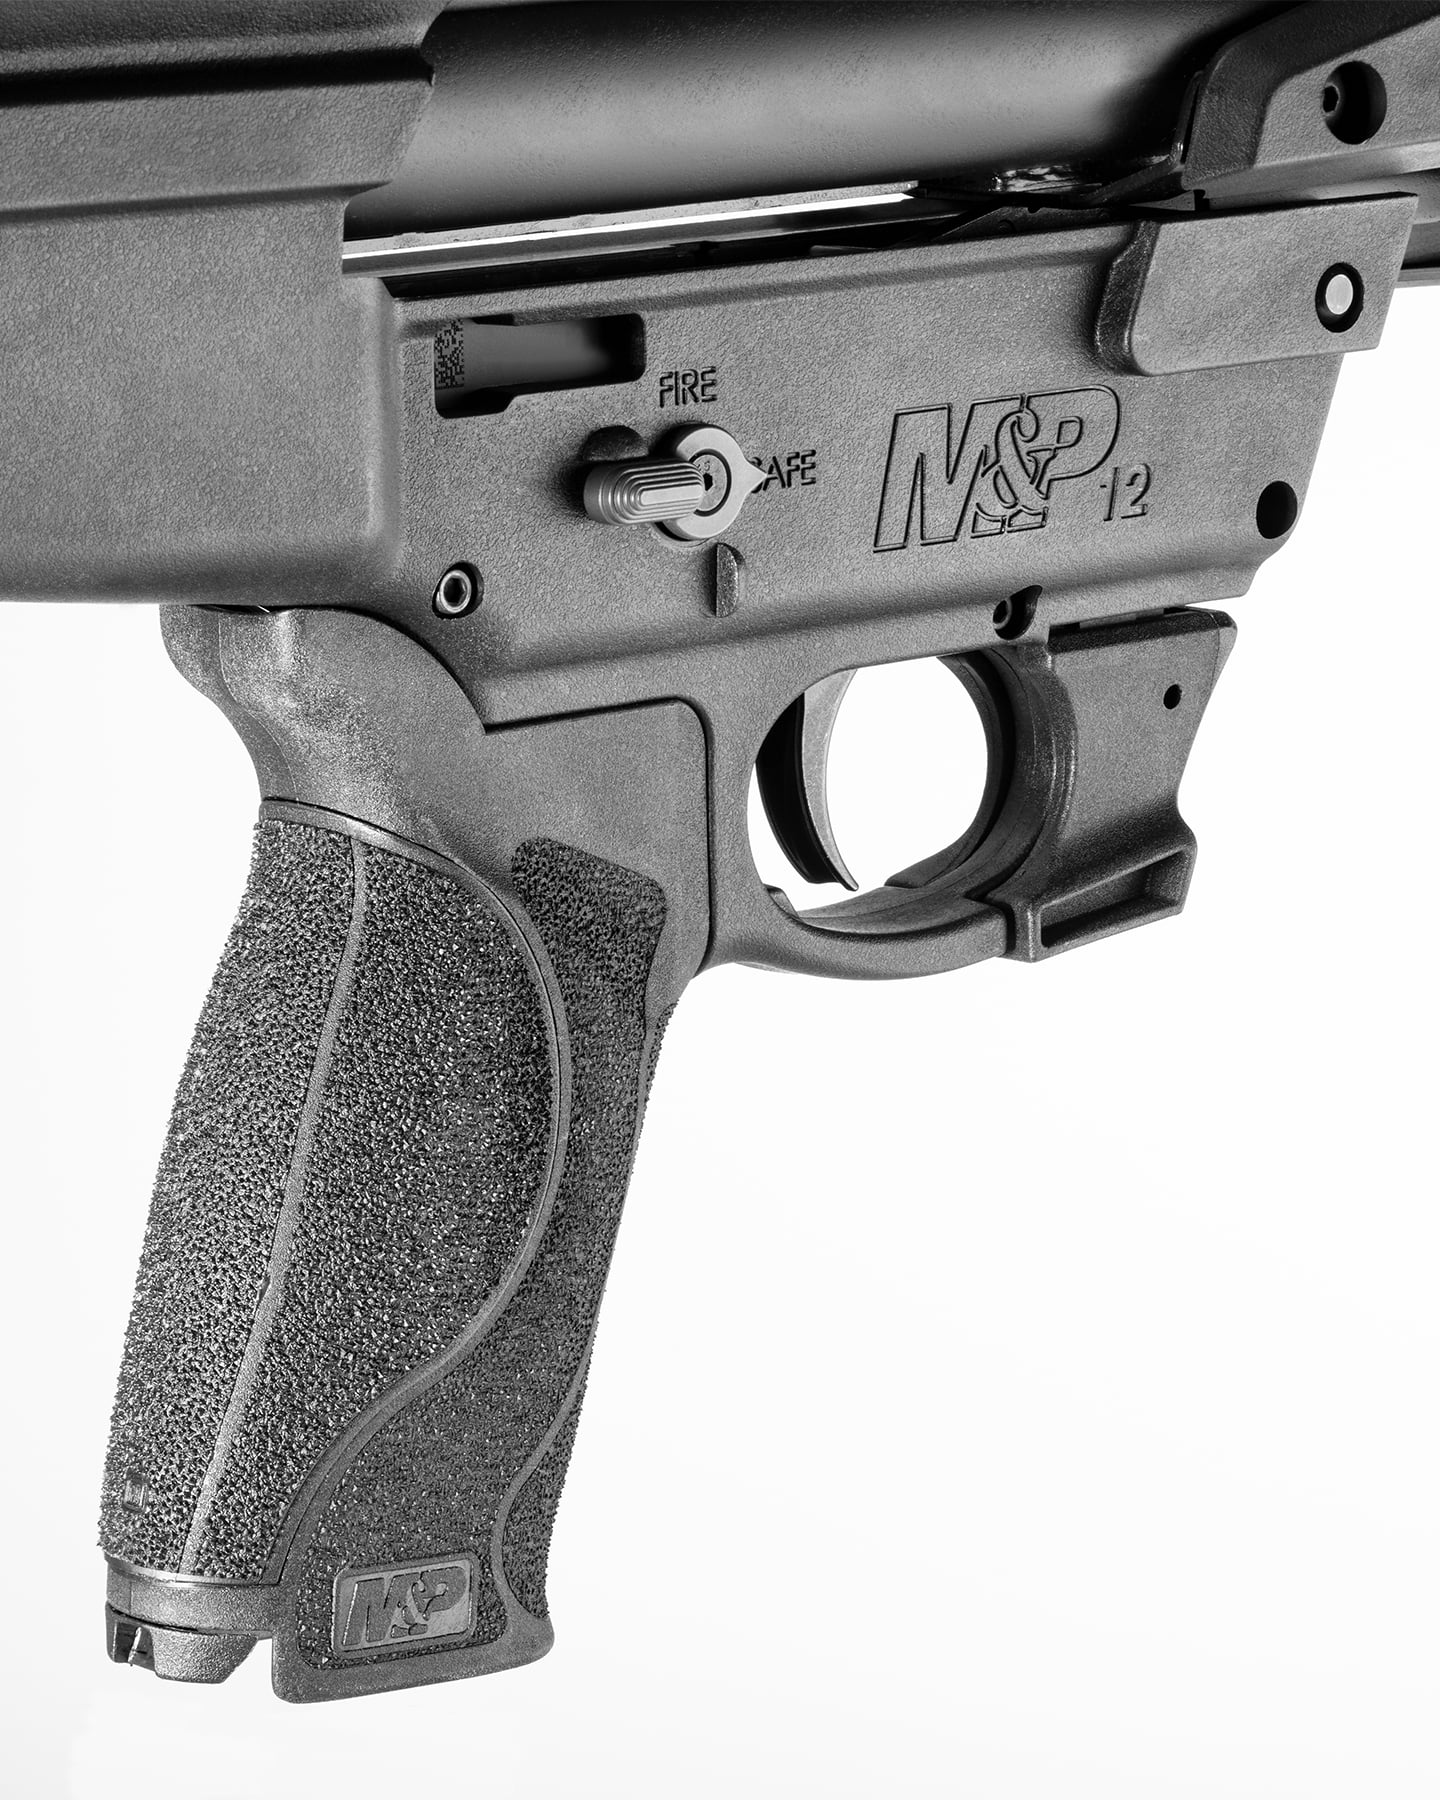 smith and wesson mp 12 shotgun 12 gauge bullpup home defense smith and wesson mp 12 shotgun 12 gauge bullpup home defense